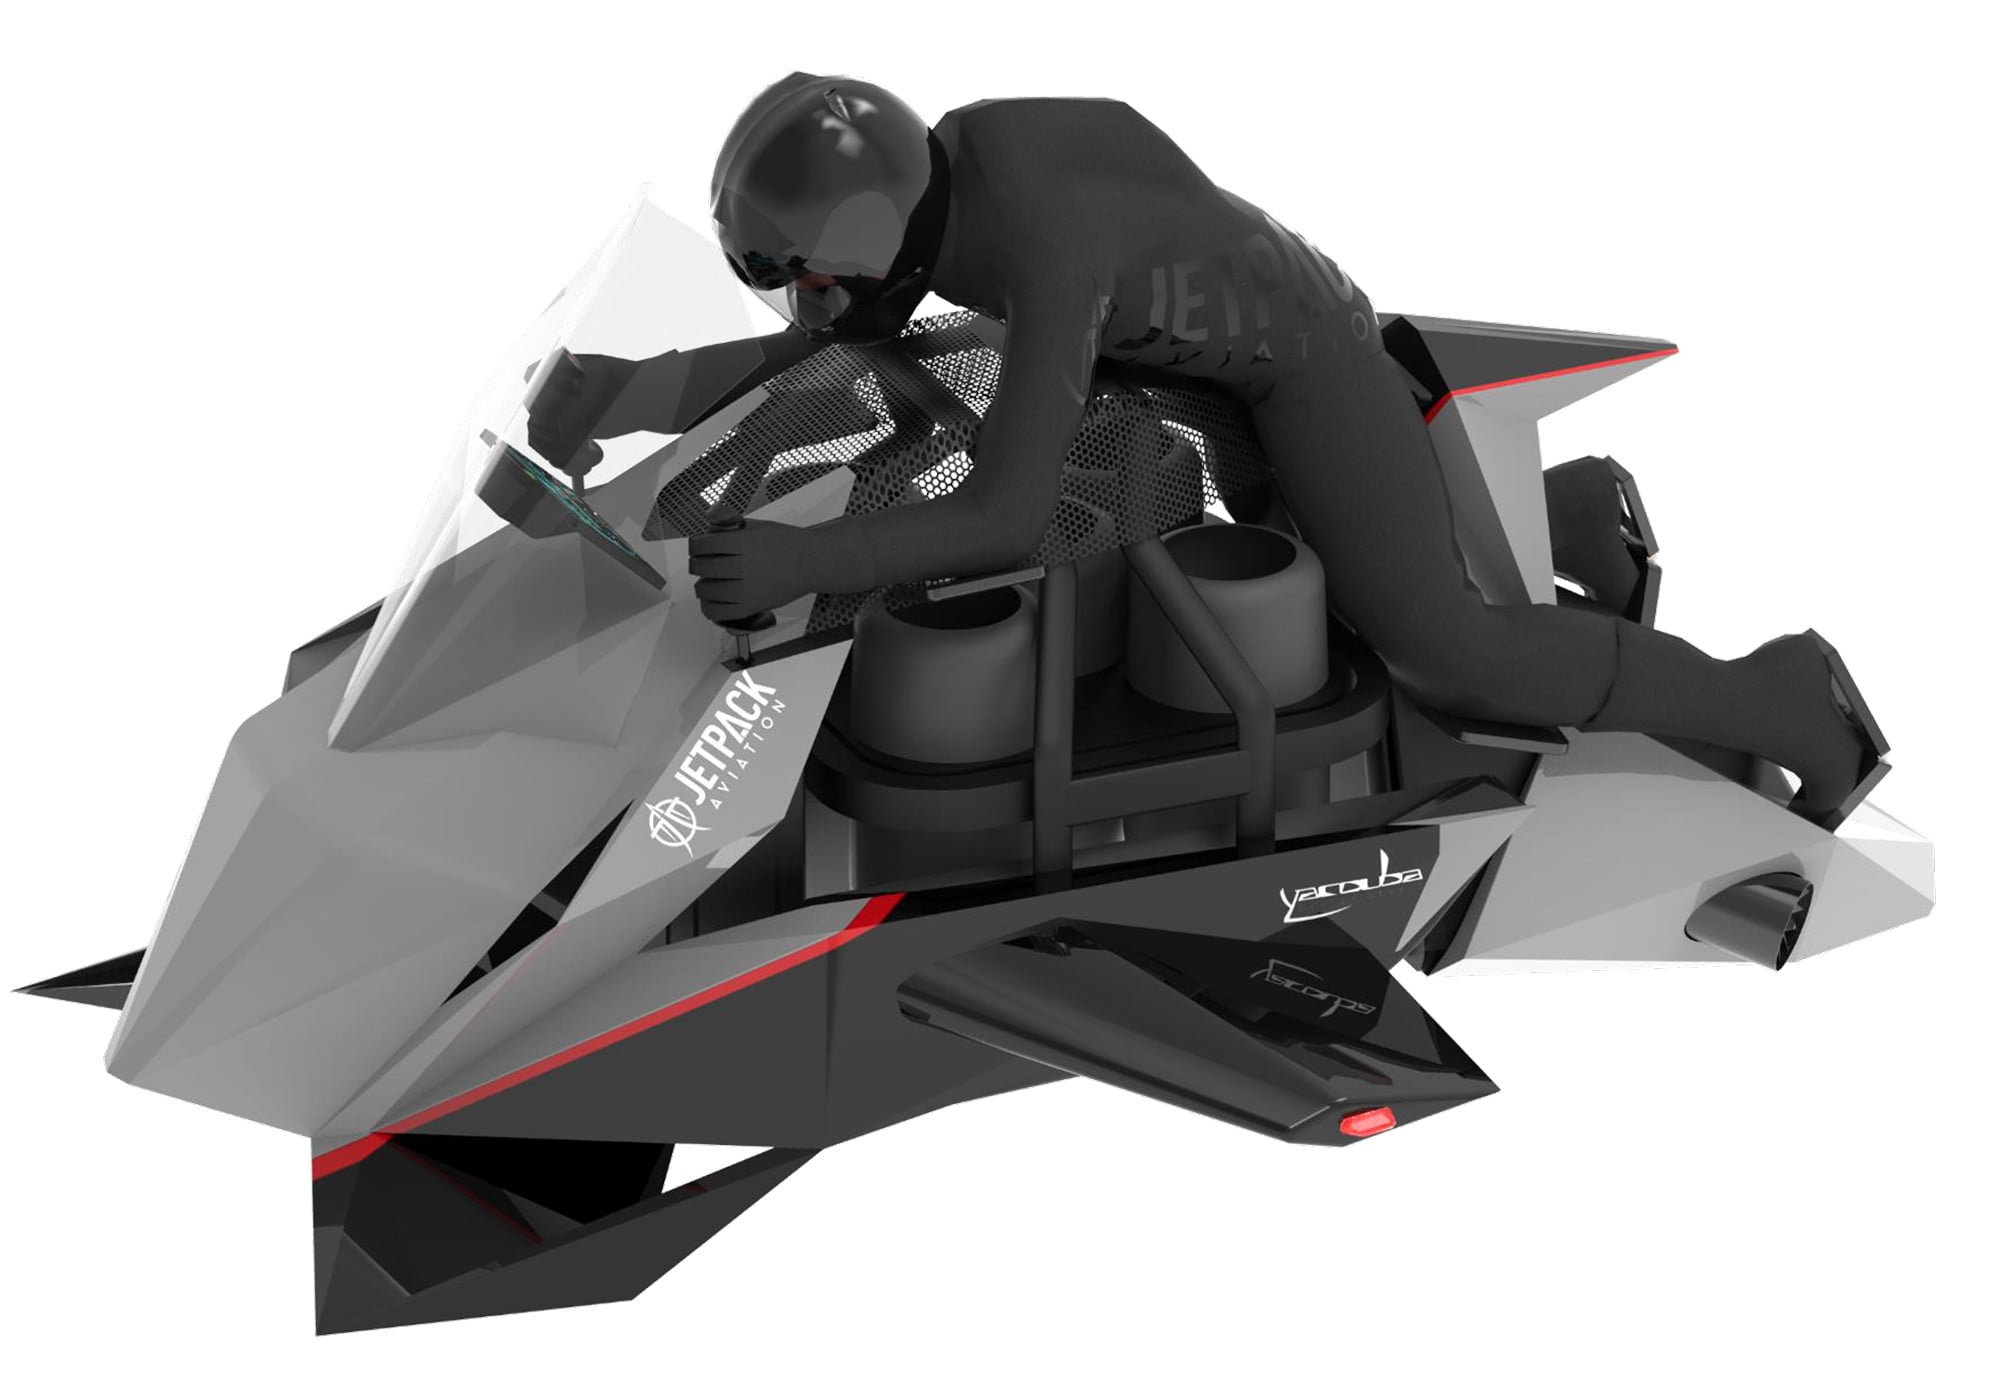 The World's Premiere Jetpack Maker Is Building a Flying